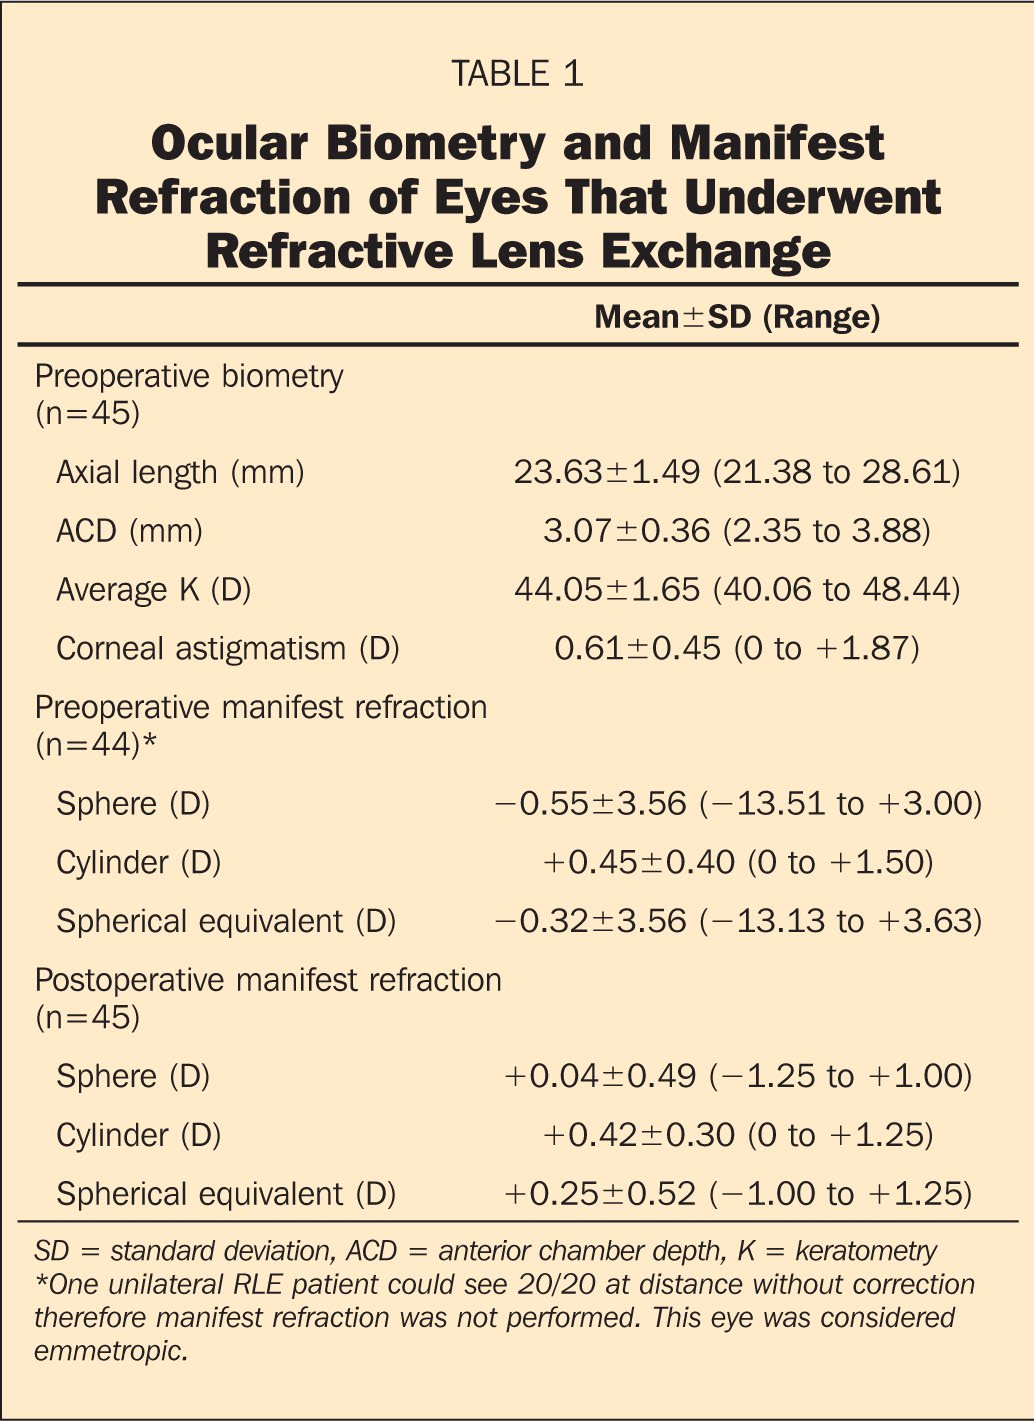 Ocular Biometry and Manifest Refraction of Eyes That Underwent Refractive Lens Exchange